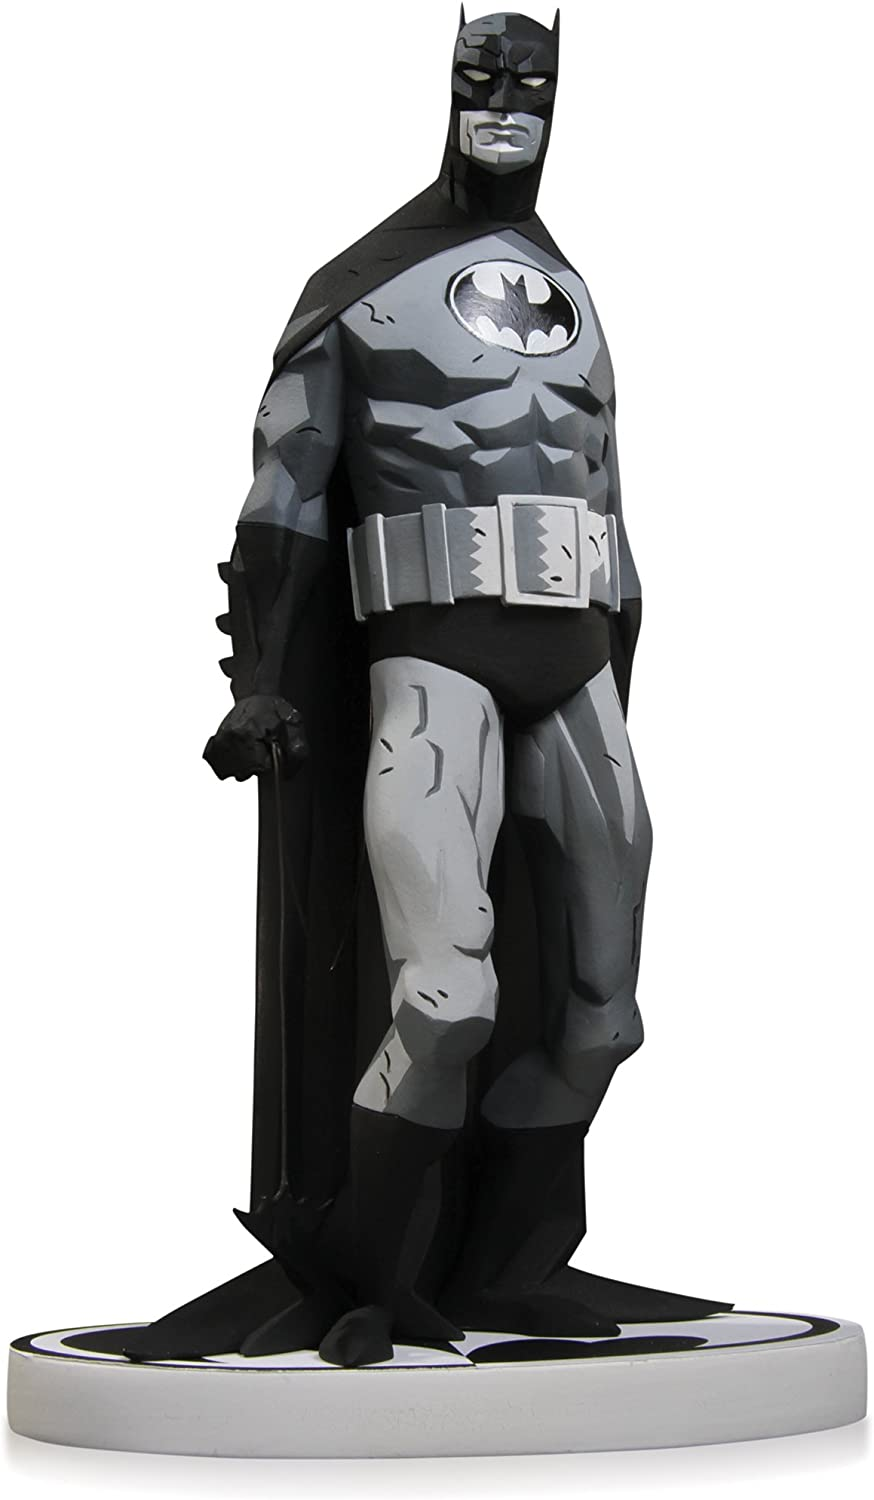 Batman Black and White statues - Mike Mignola